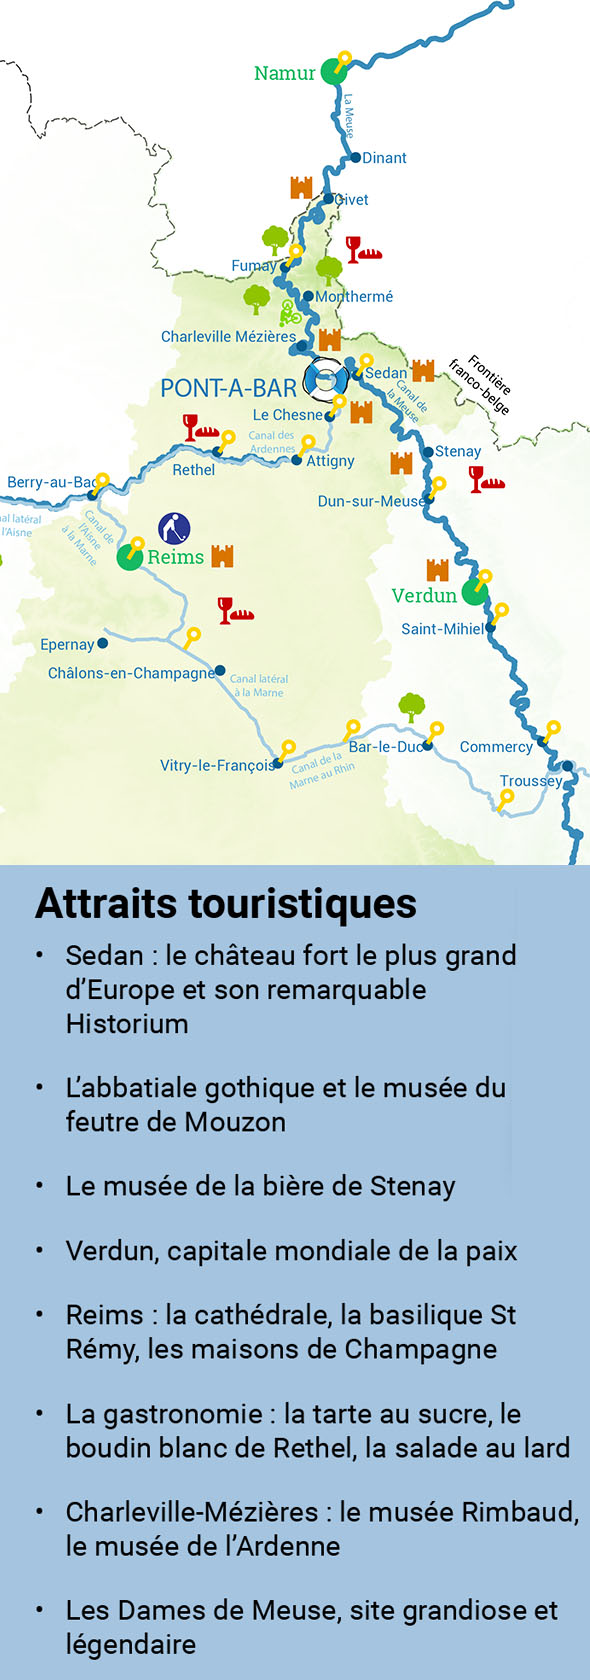 Tourist attractions in the Ardennes